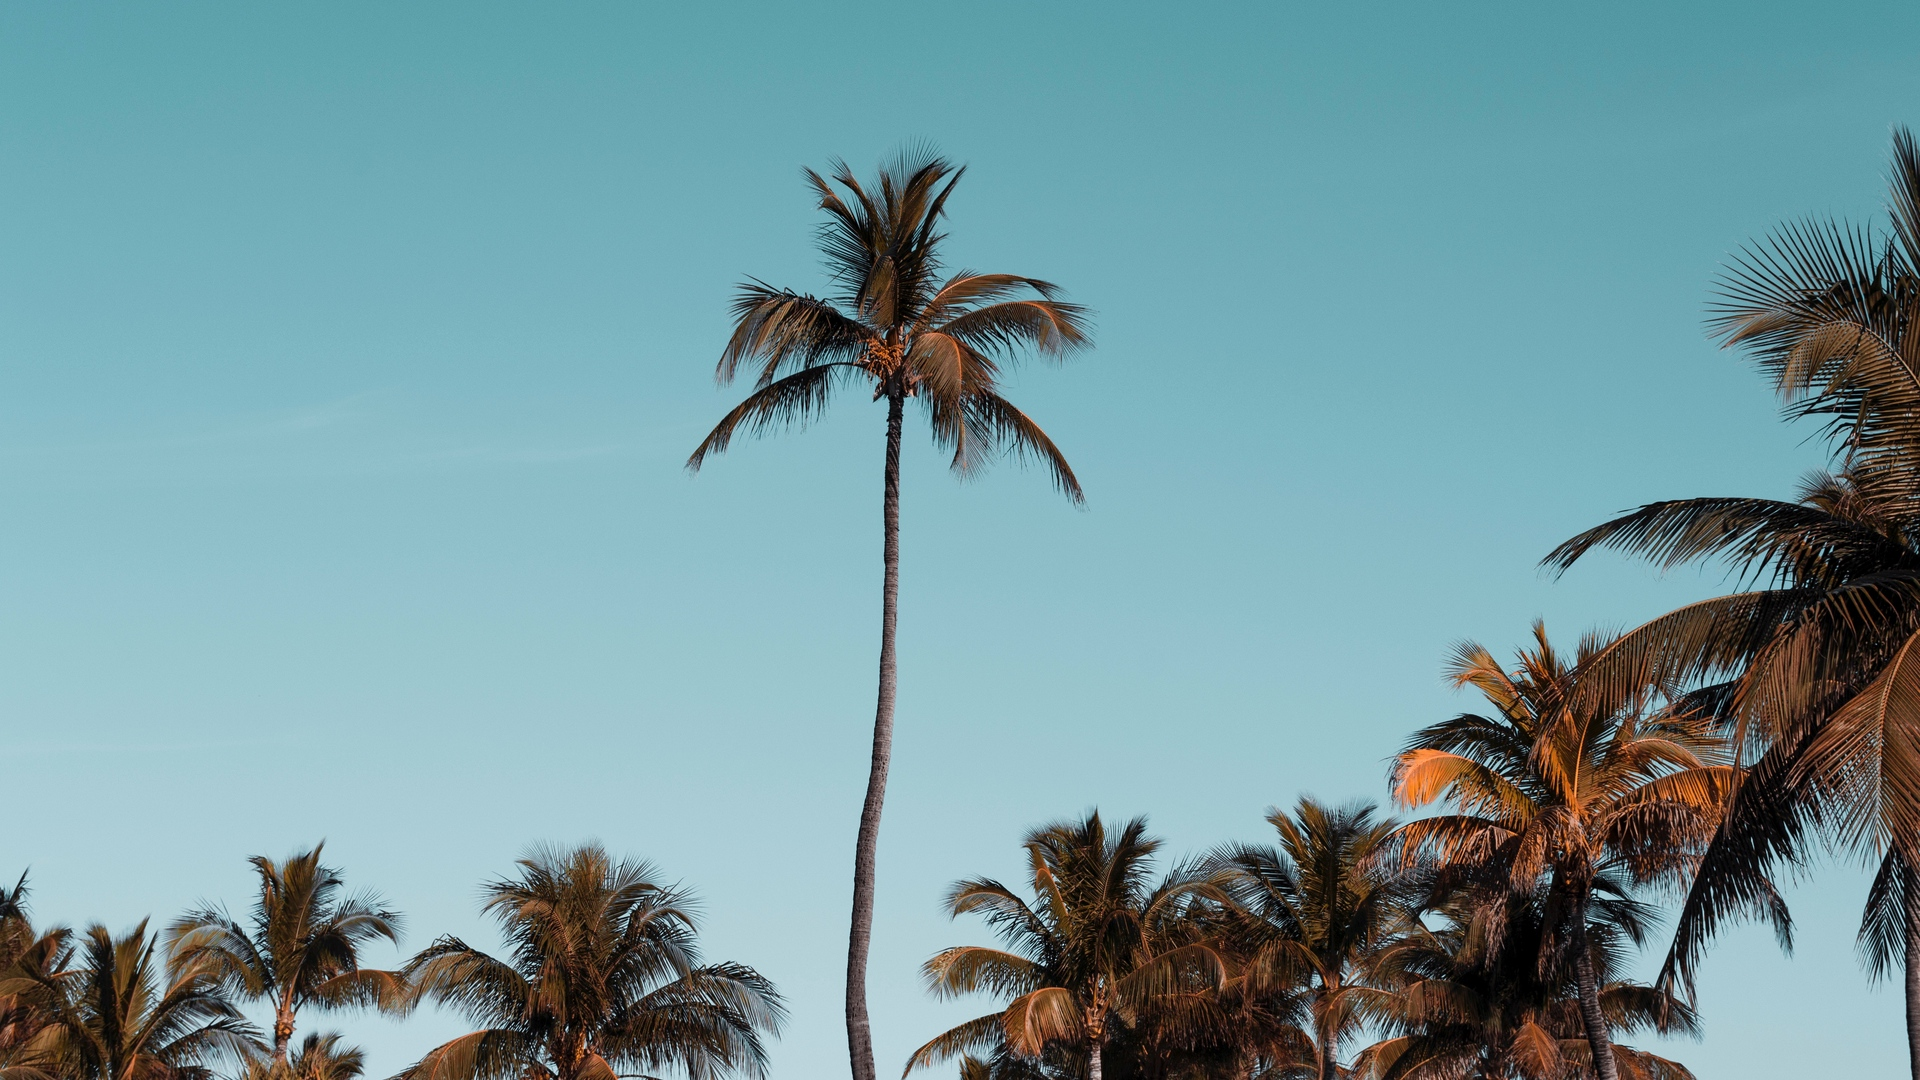 Wallpaper Palm Trees, Trees, Crowns, Sky, Tropical - Palm Trees - HD Wallpaper